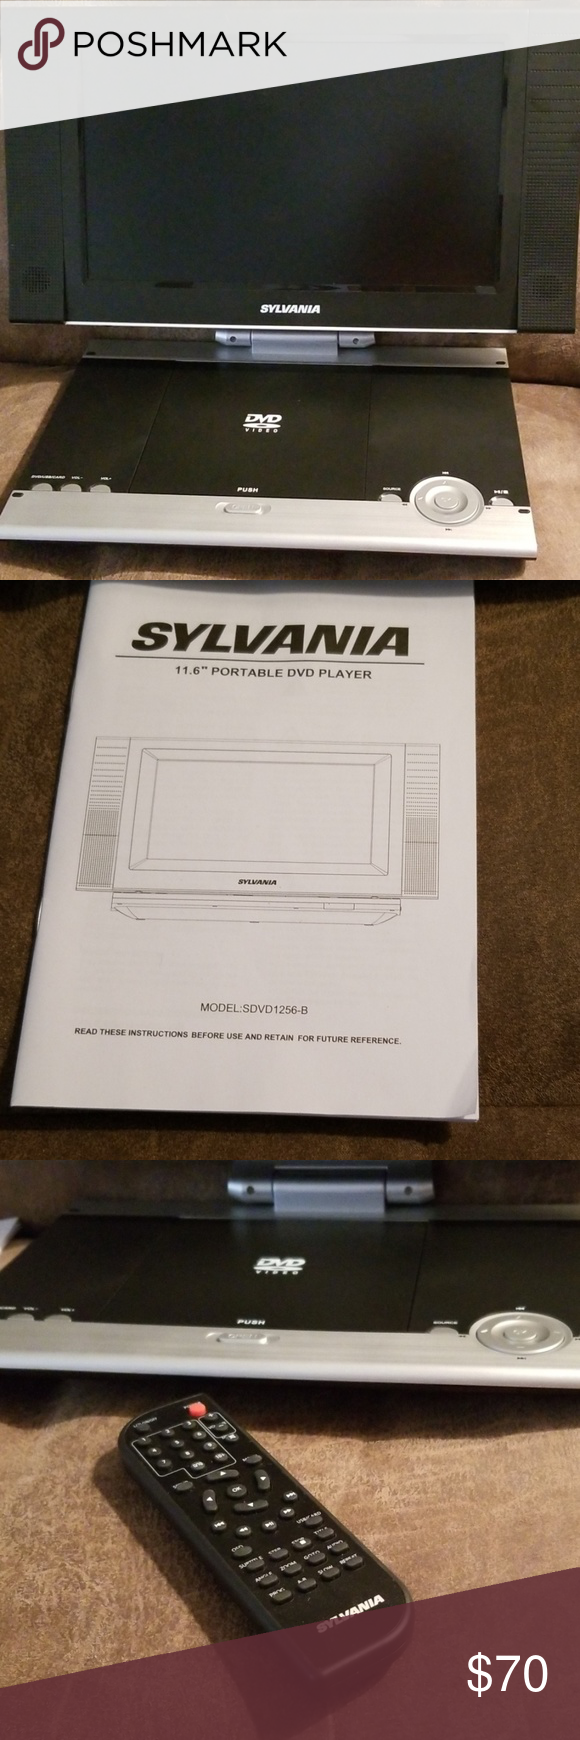 Portable Dvd Player Brand New Sylvania Portable Dvd Player Comes With Owner S Manual Wall Charger Car Charger Portable Dvd Player Dvd Player Charger Car